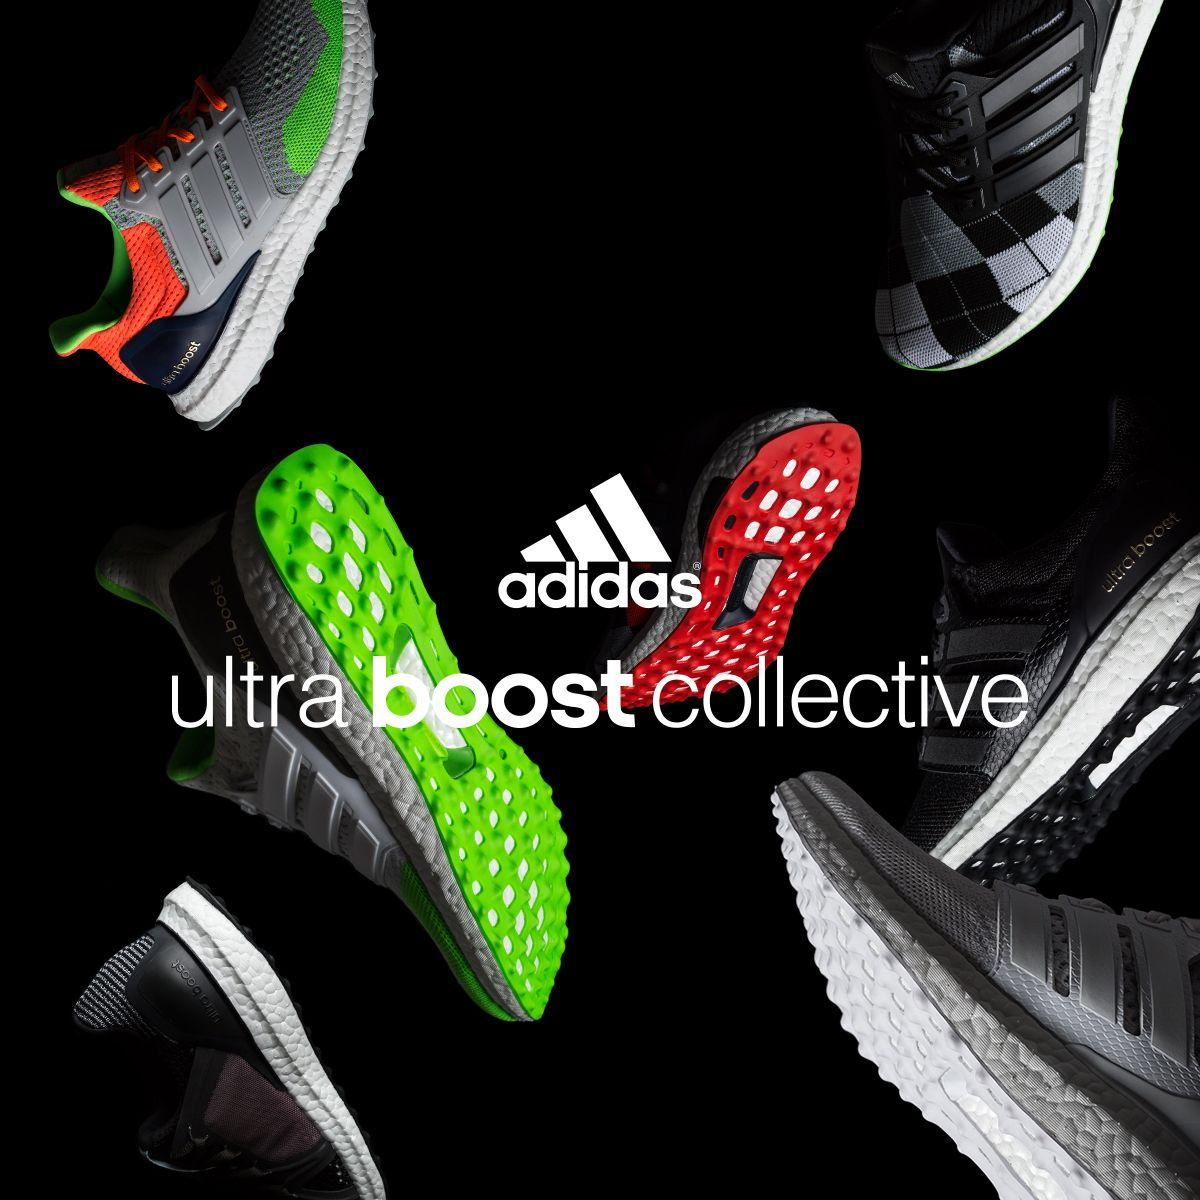 e7246f5f7 adidas Presents the Ultra BOOST Collective Limited-Edition Drop